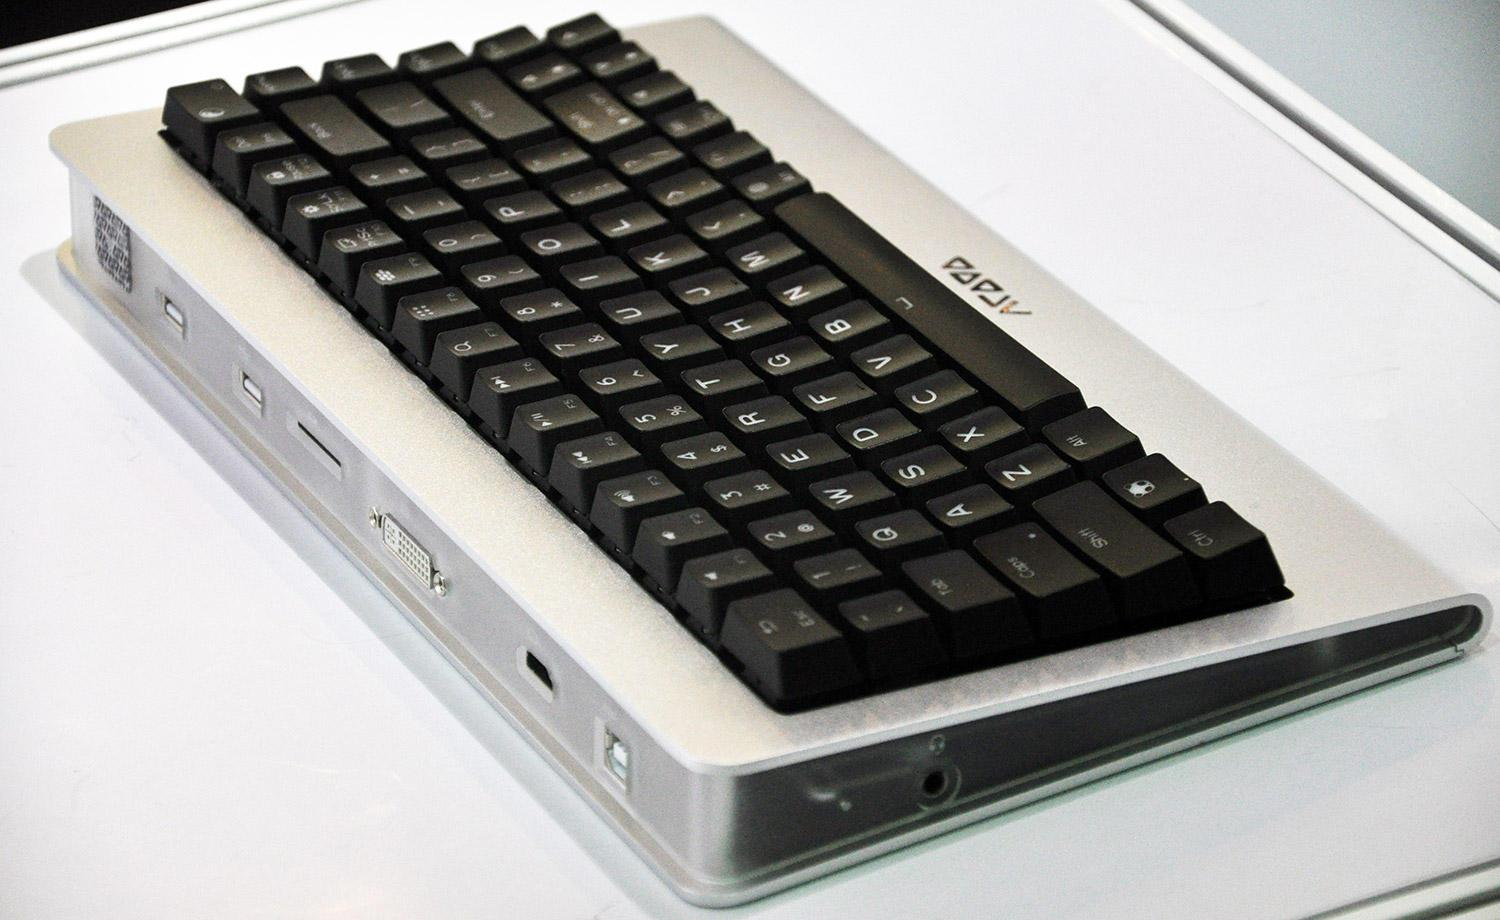 OneBoard to rule them all? This smart keyboard PC runs Windows or Android